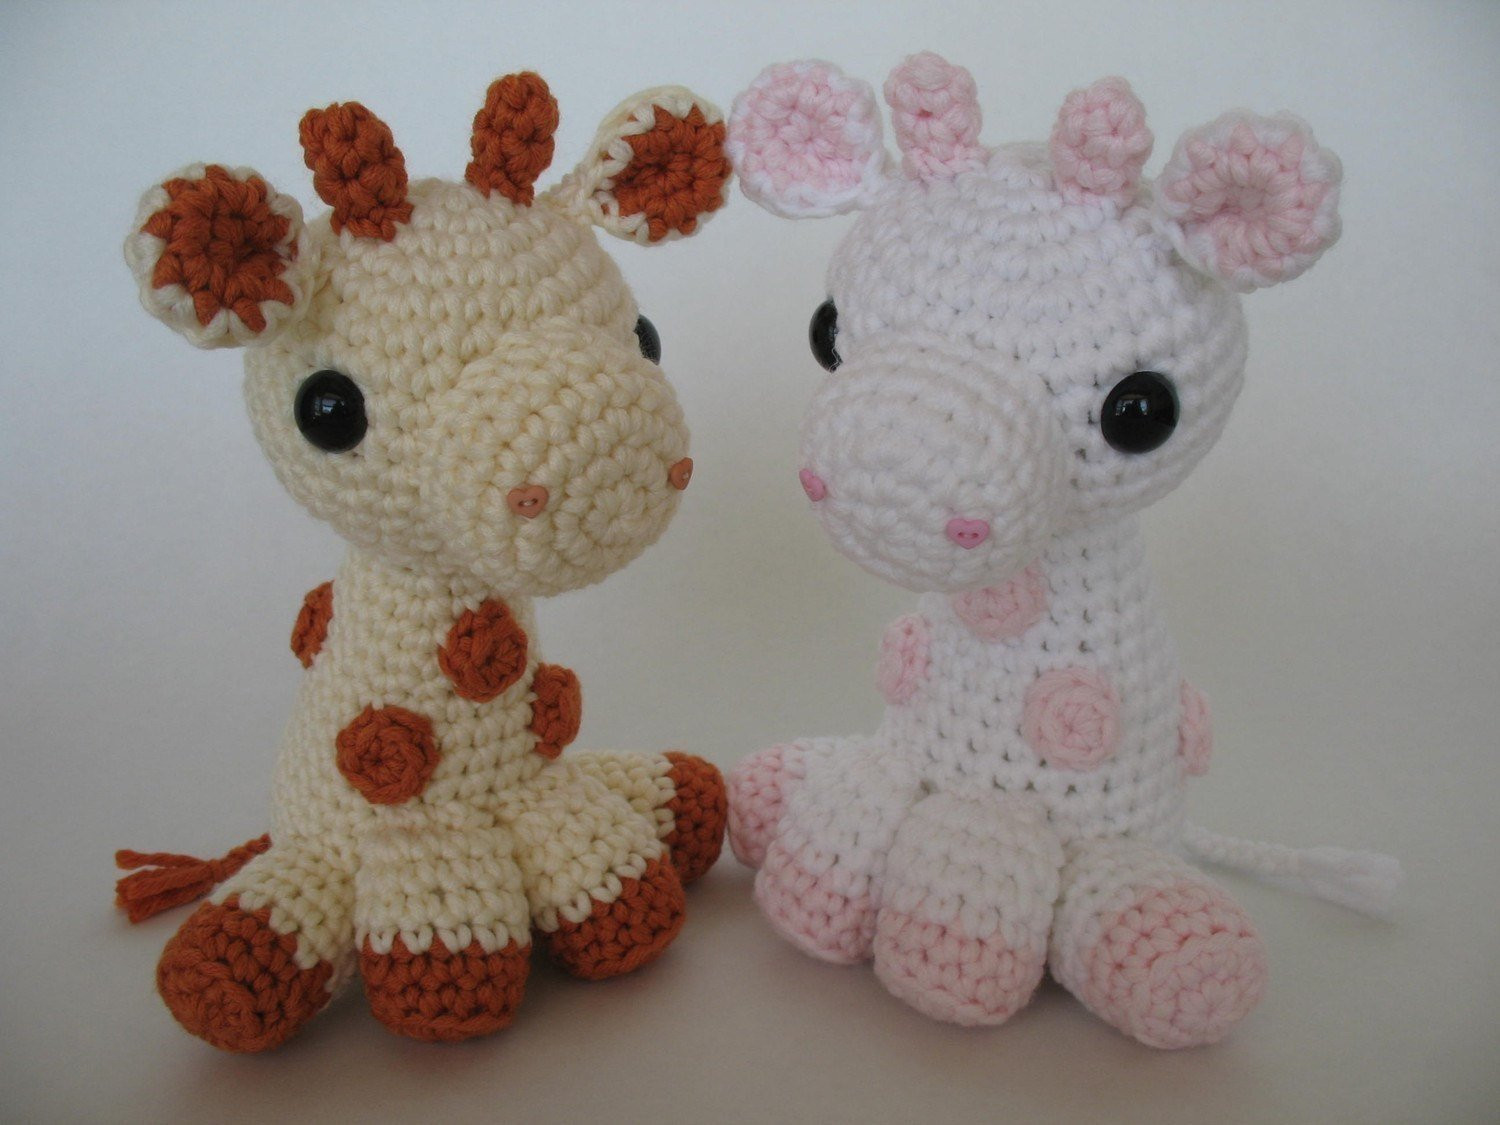 Crochet Giraffe Pattern Inspirational Crocheted Baby Giraffe Pdf Pattern Of Marvelous 41 Ideas Crochet Giraffe Pattern